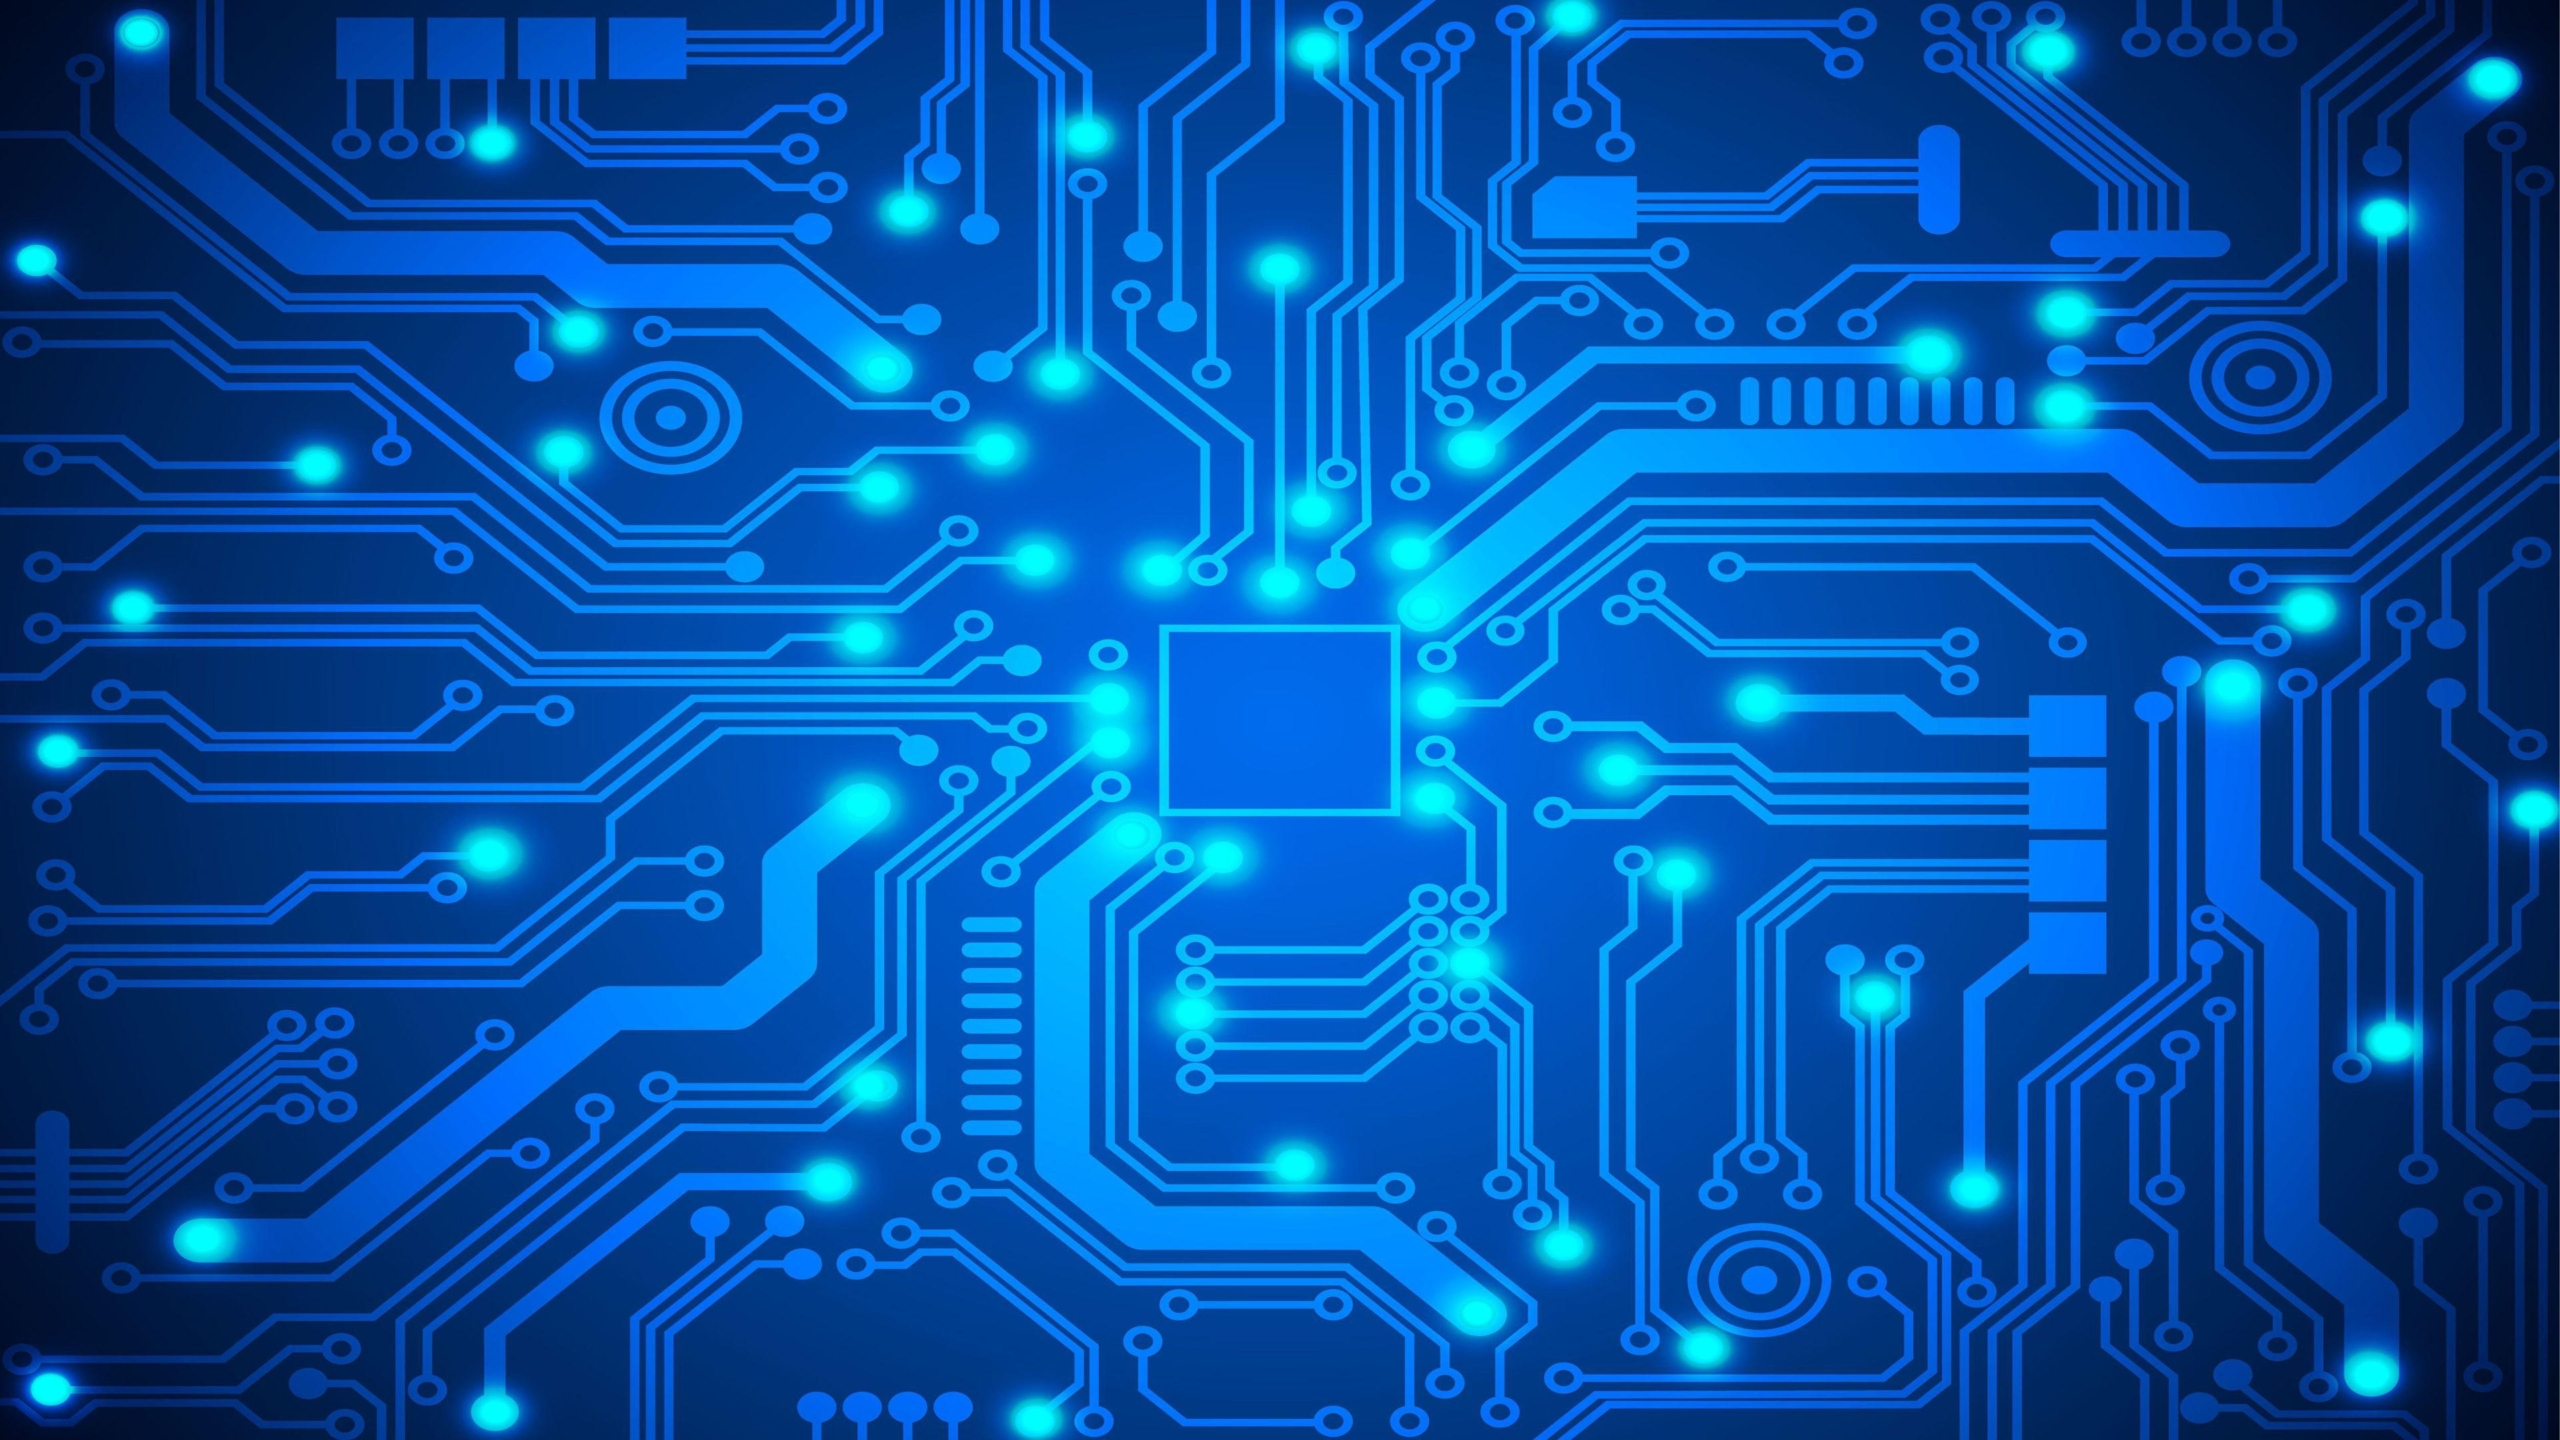 Circuit Board Wallpaper Ideas – Get the Best Images and Designs